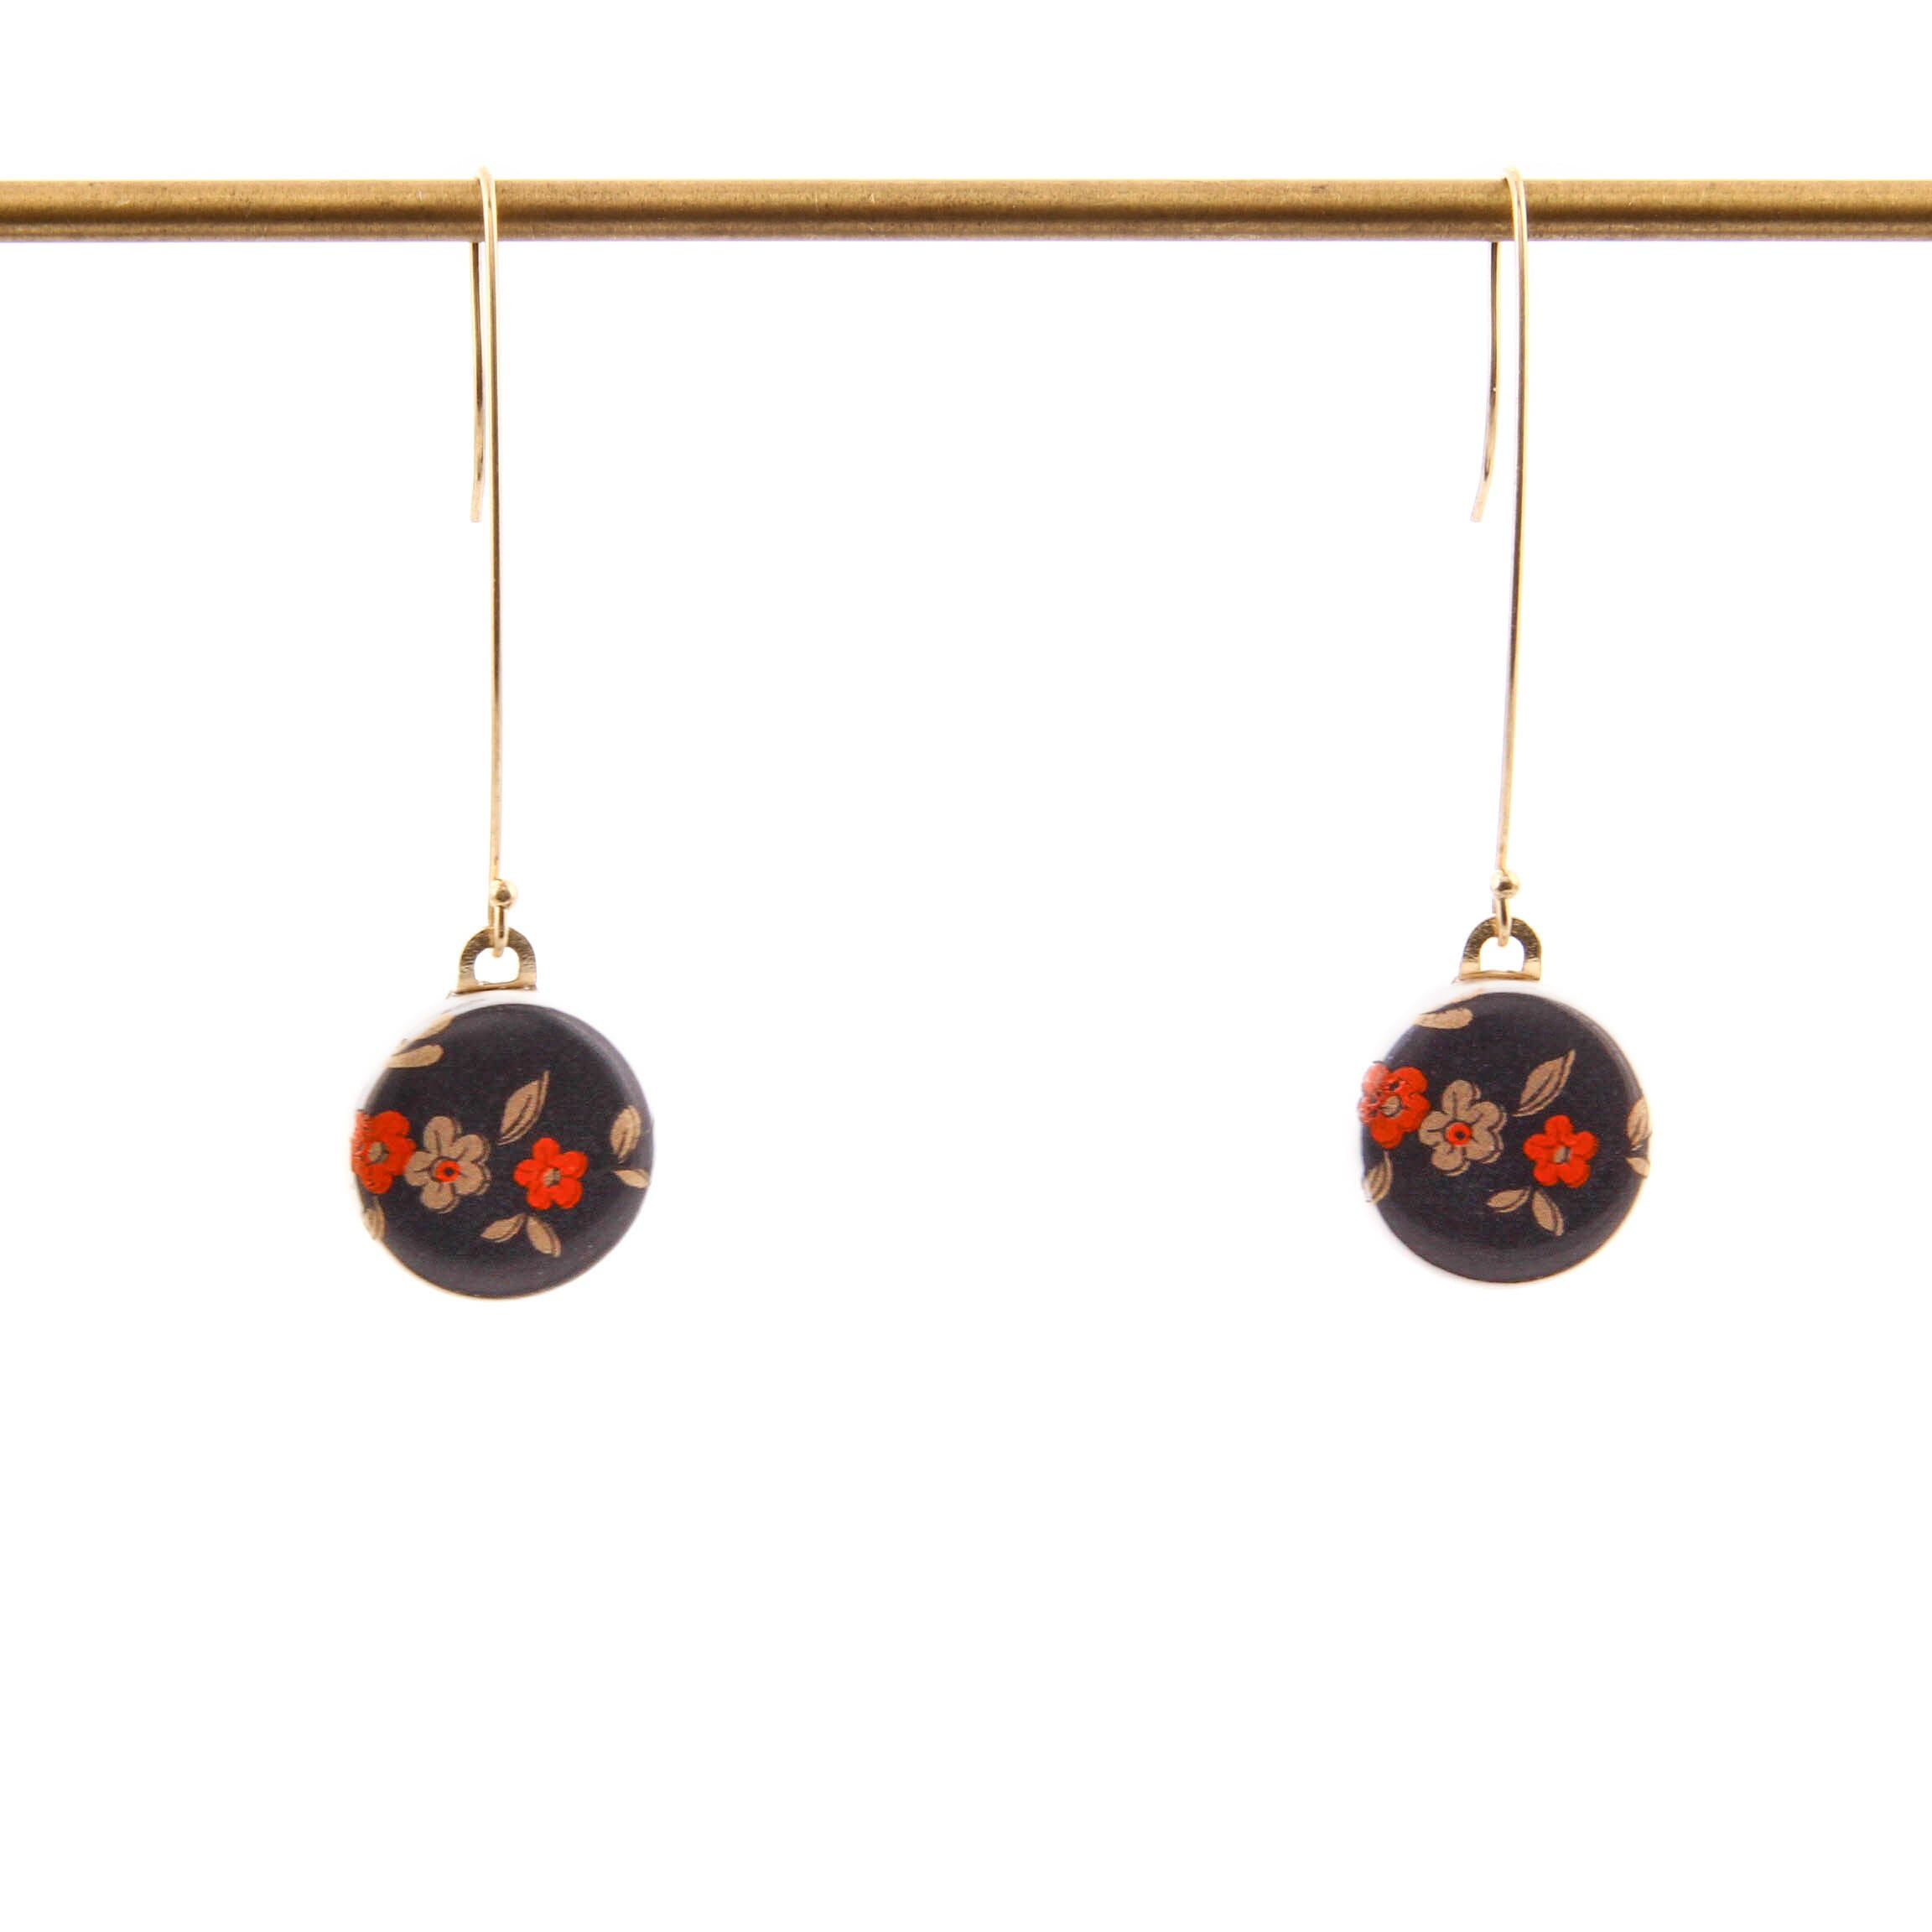 Melanie Sherman, Red Flowers on Porcelain Dangle Earrings